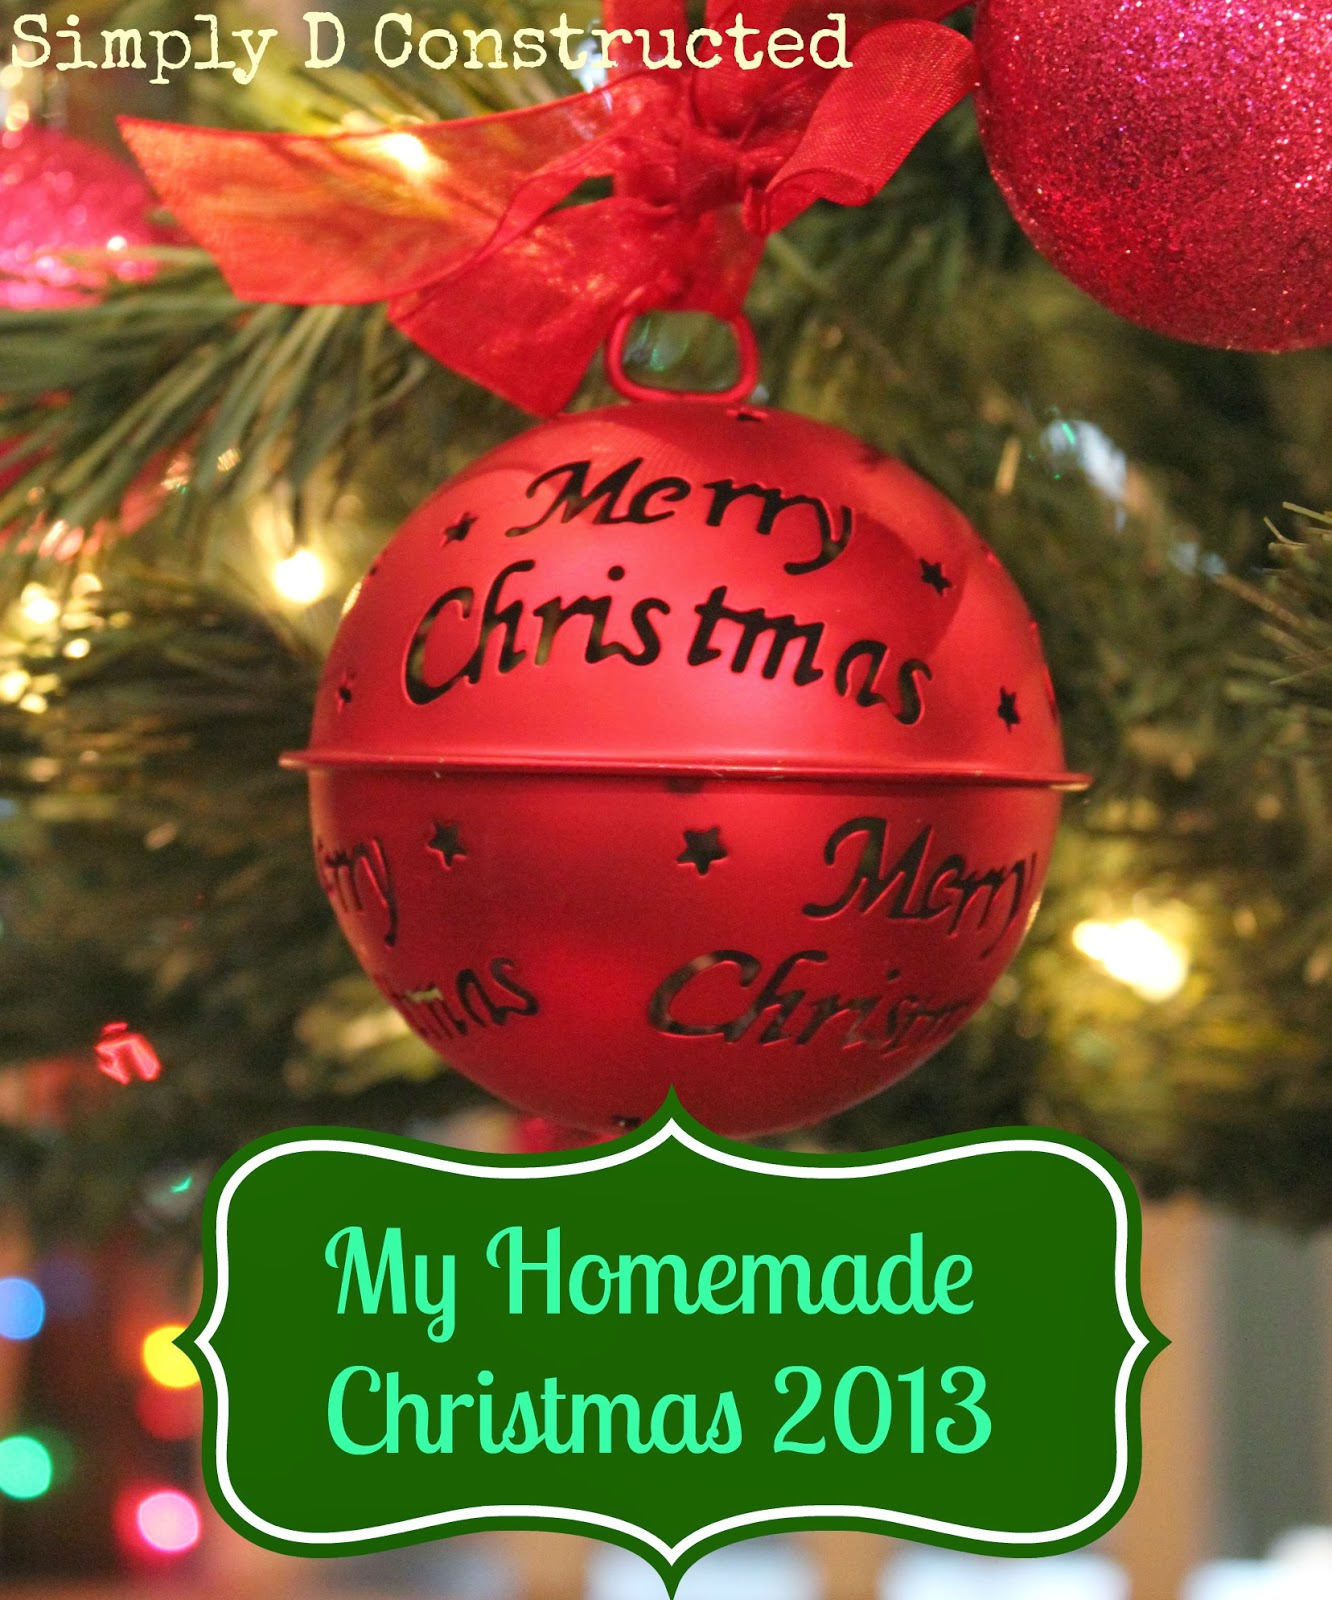 DIY Homemade Christmas Gifts | Simply D Constsructed